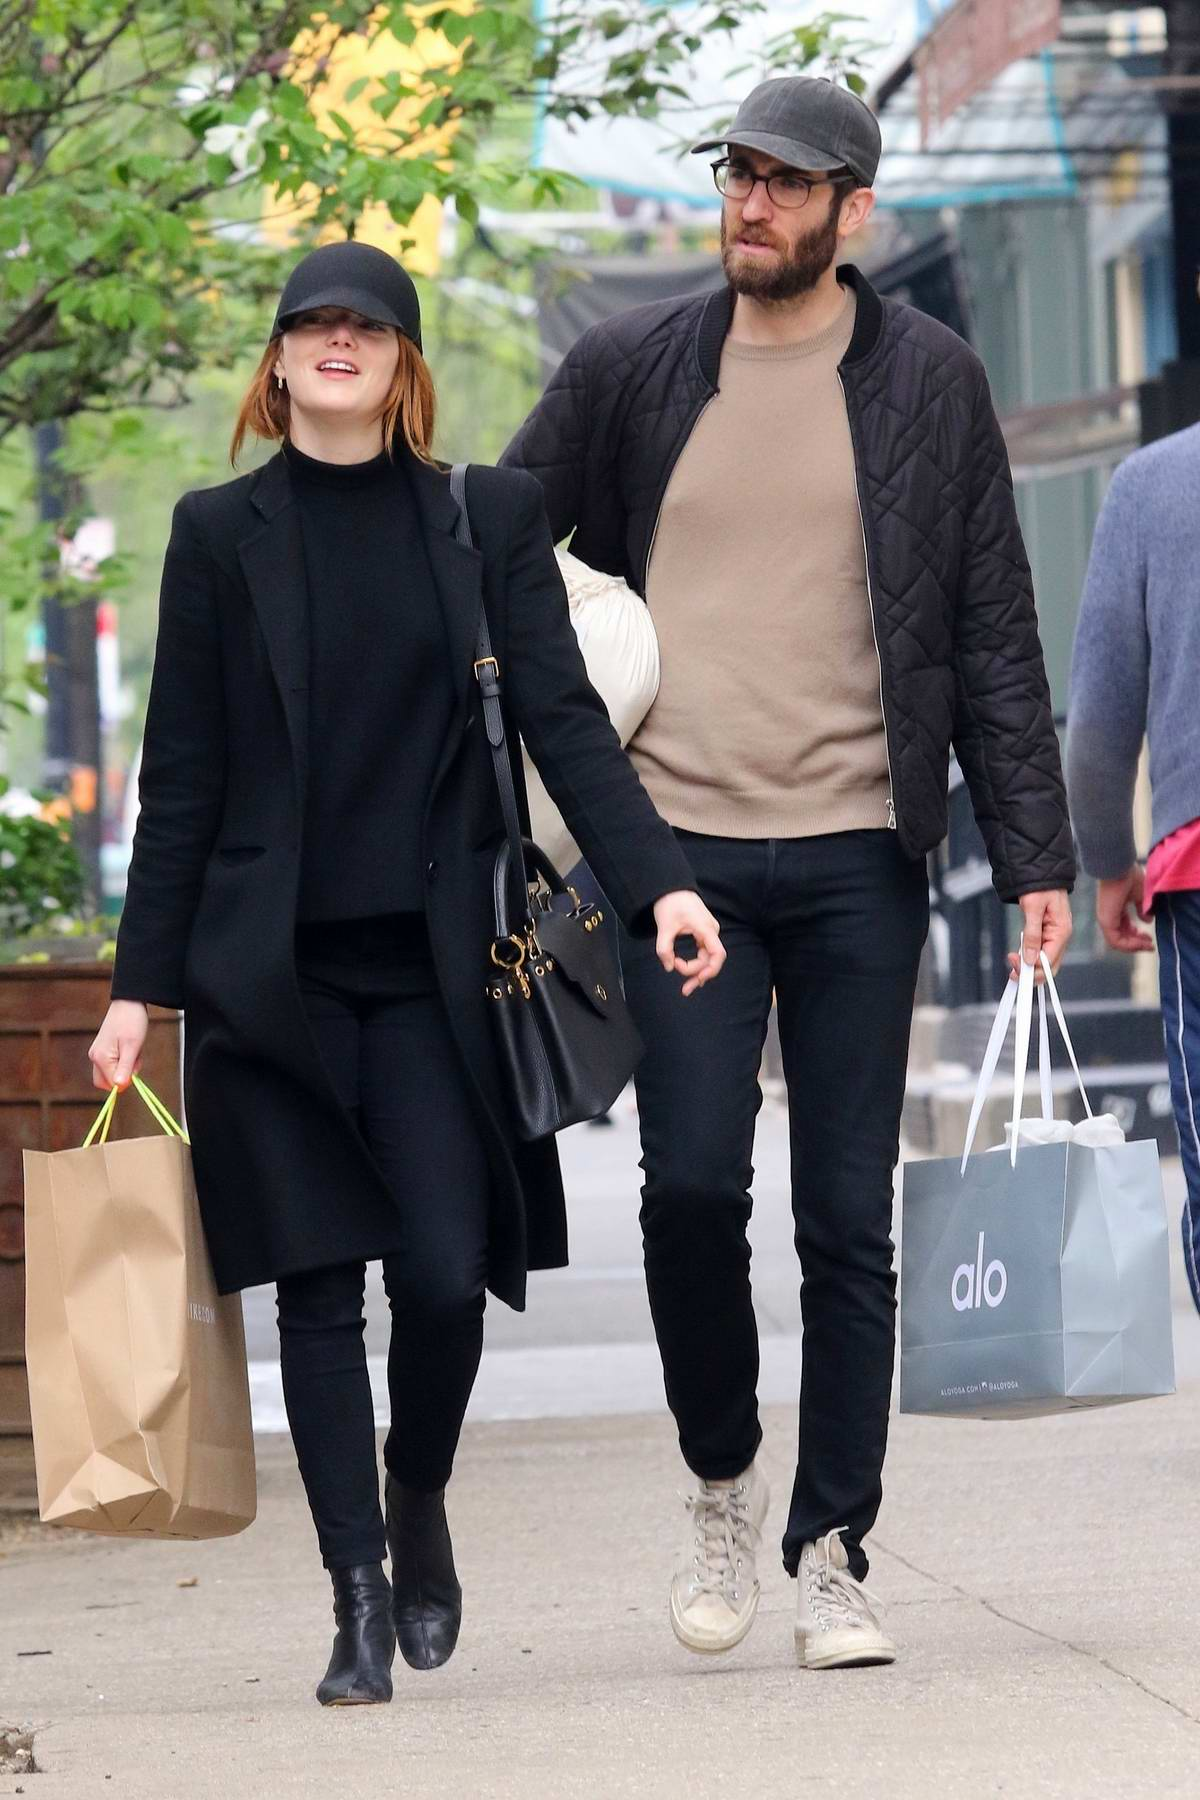 Emma Stone and Dave McCary steps out for some shopping in New York City